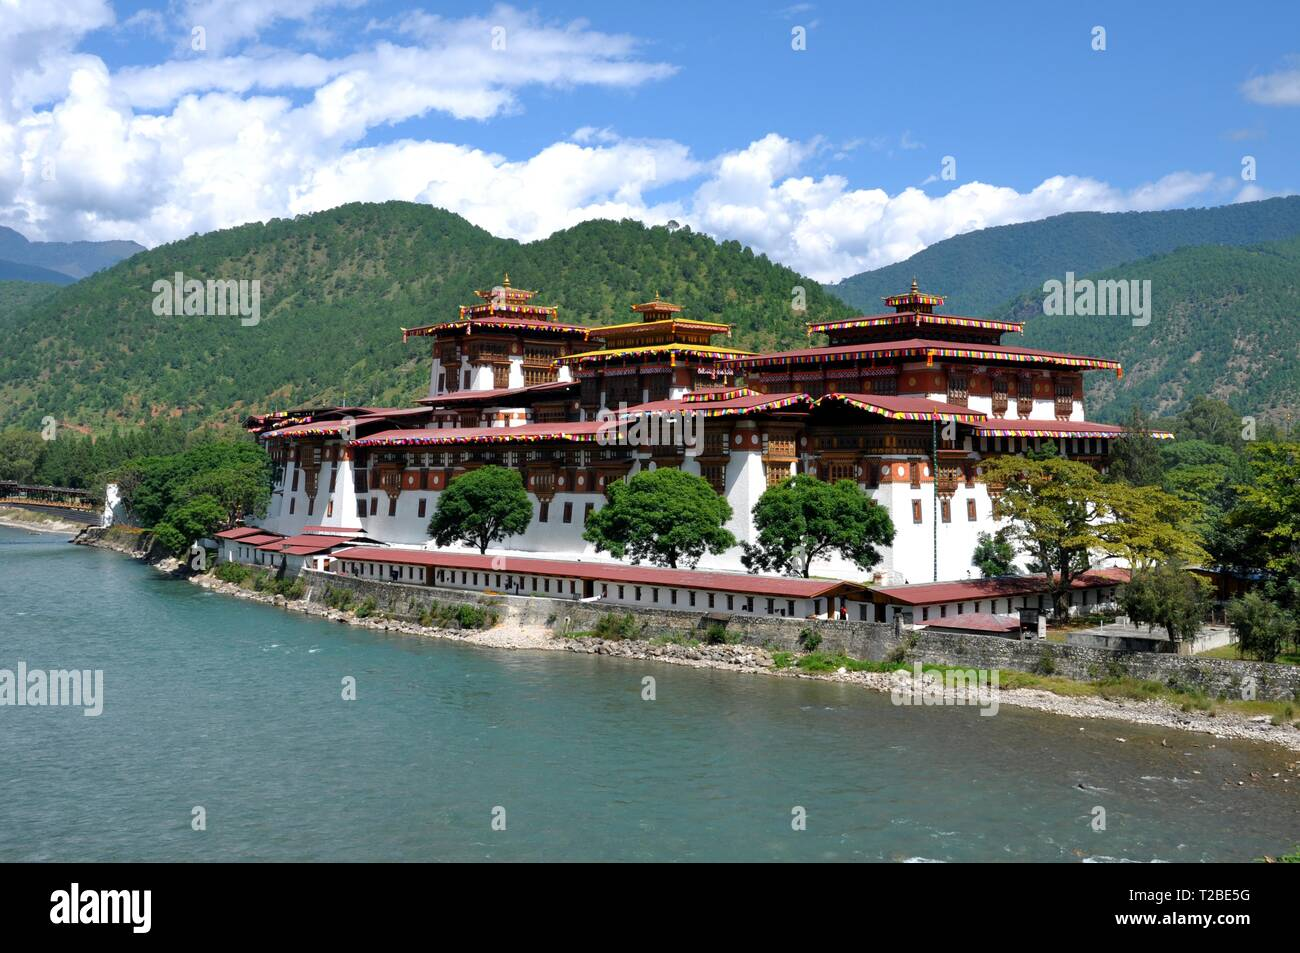 Punakha Palace, Bhutan, Punakha-Dzong, Palace of Happiness, Buddhist Monastery Castle, Six-Story-Structure, Administrative Center, District Punakha - Stock Image